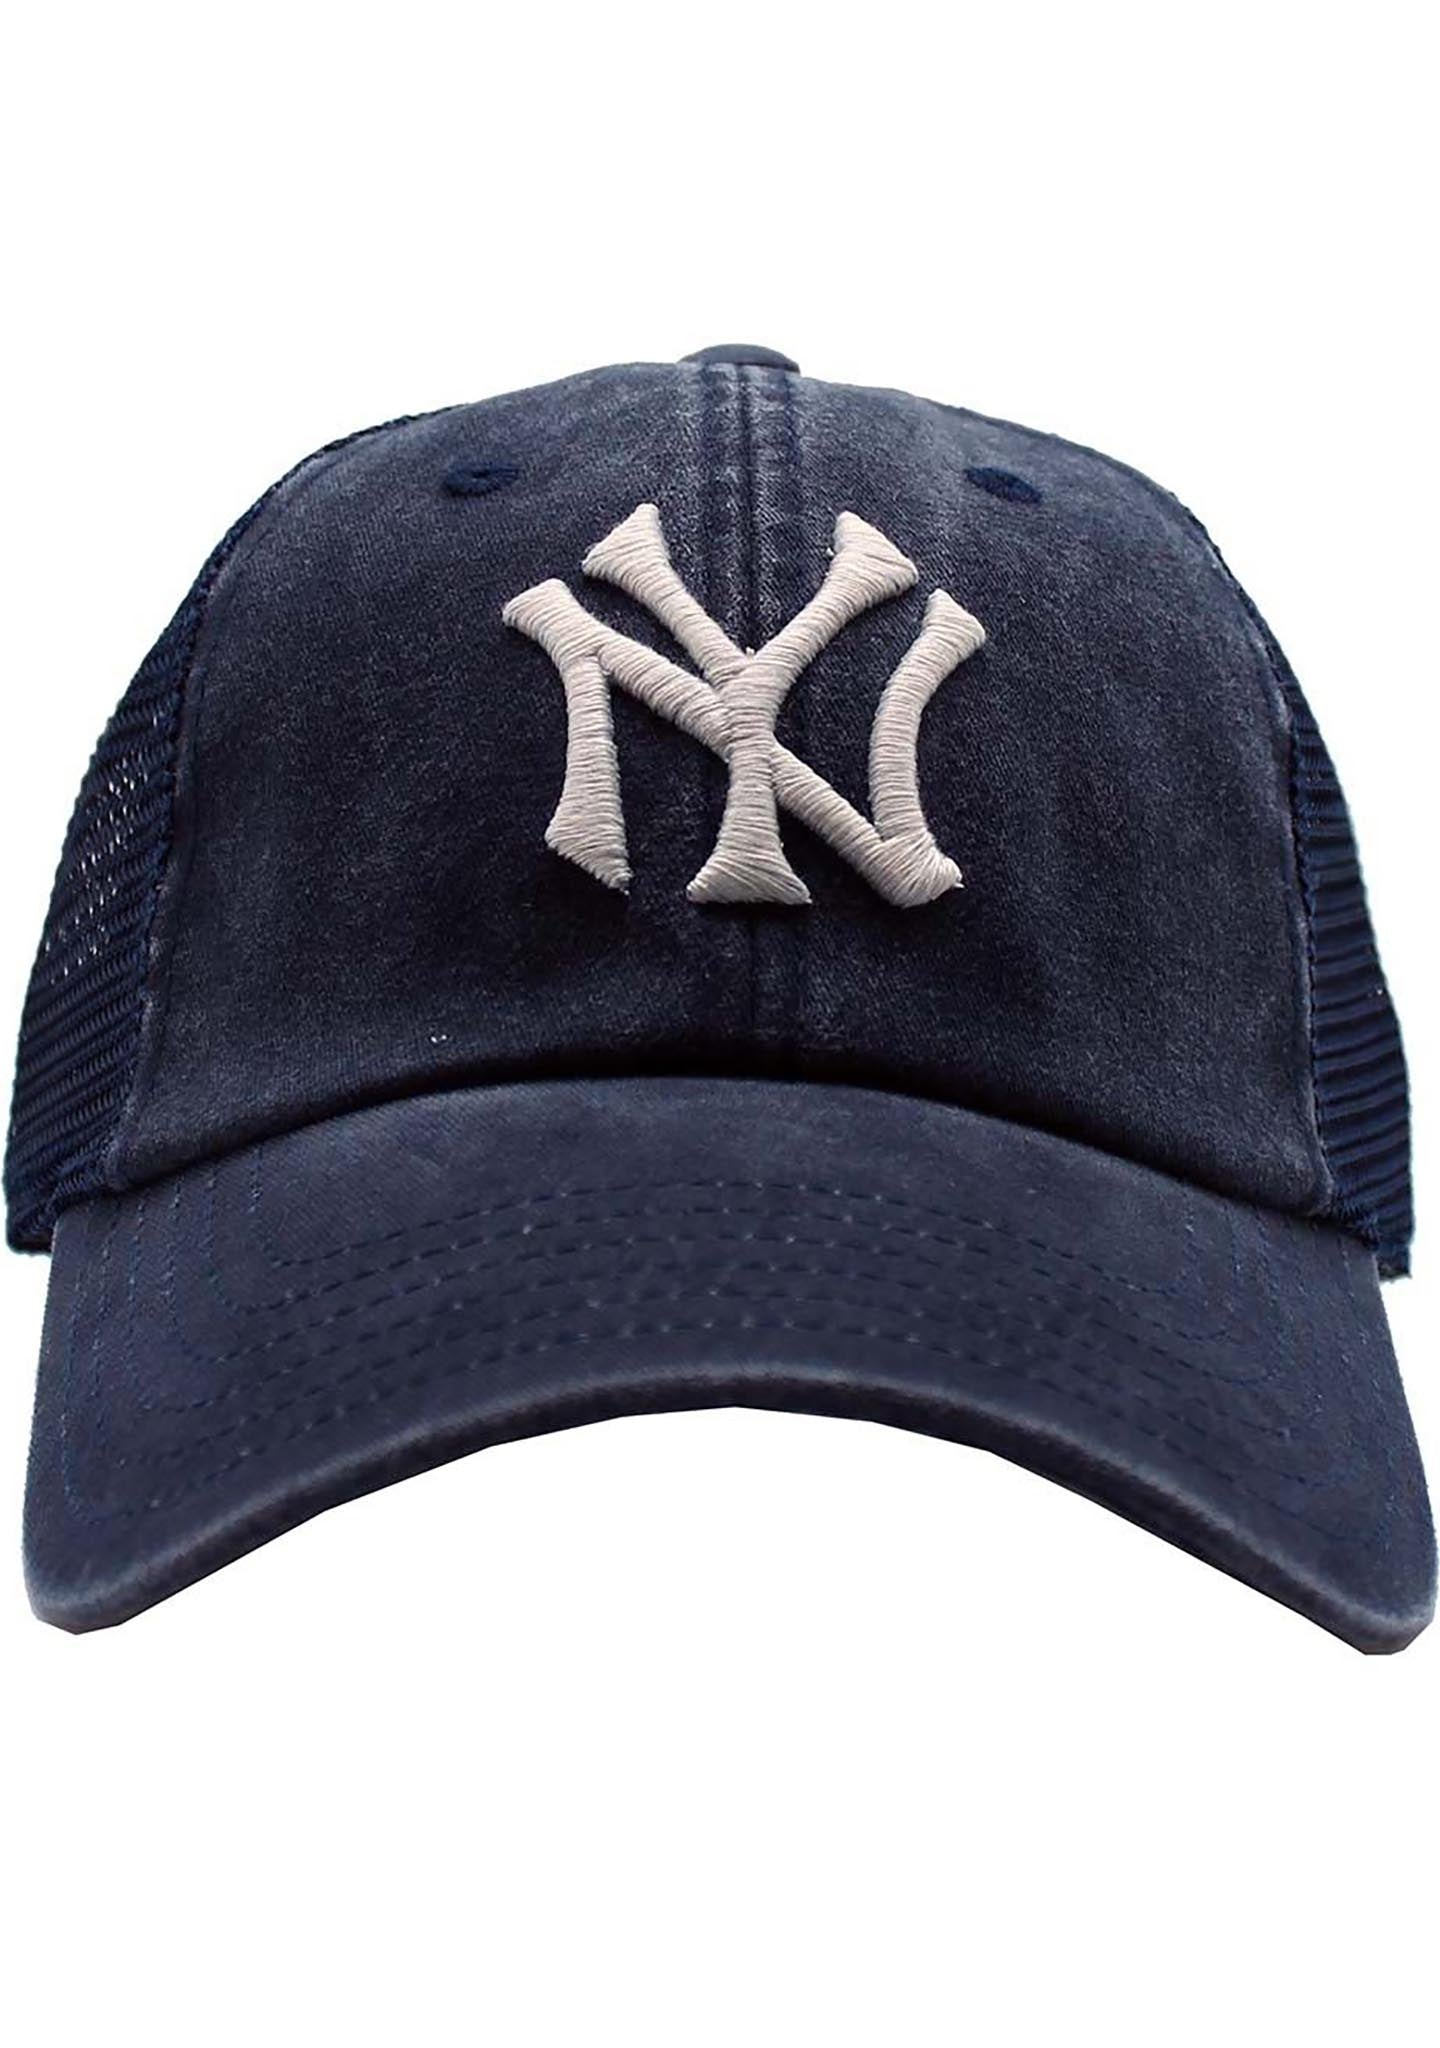 American Needle New York Yankees Raglan Bone Baseball Hat